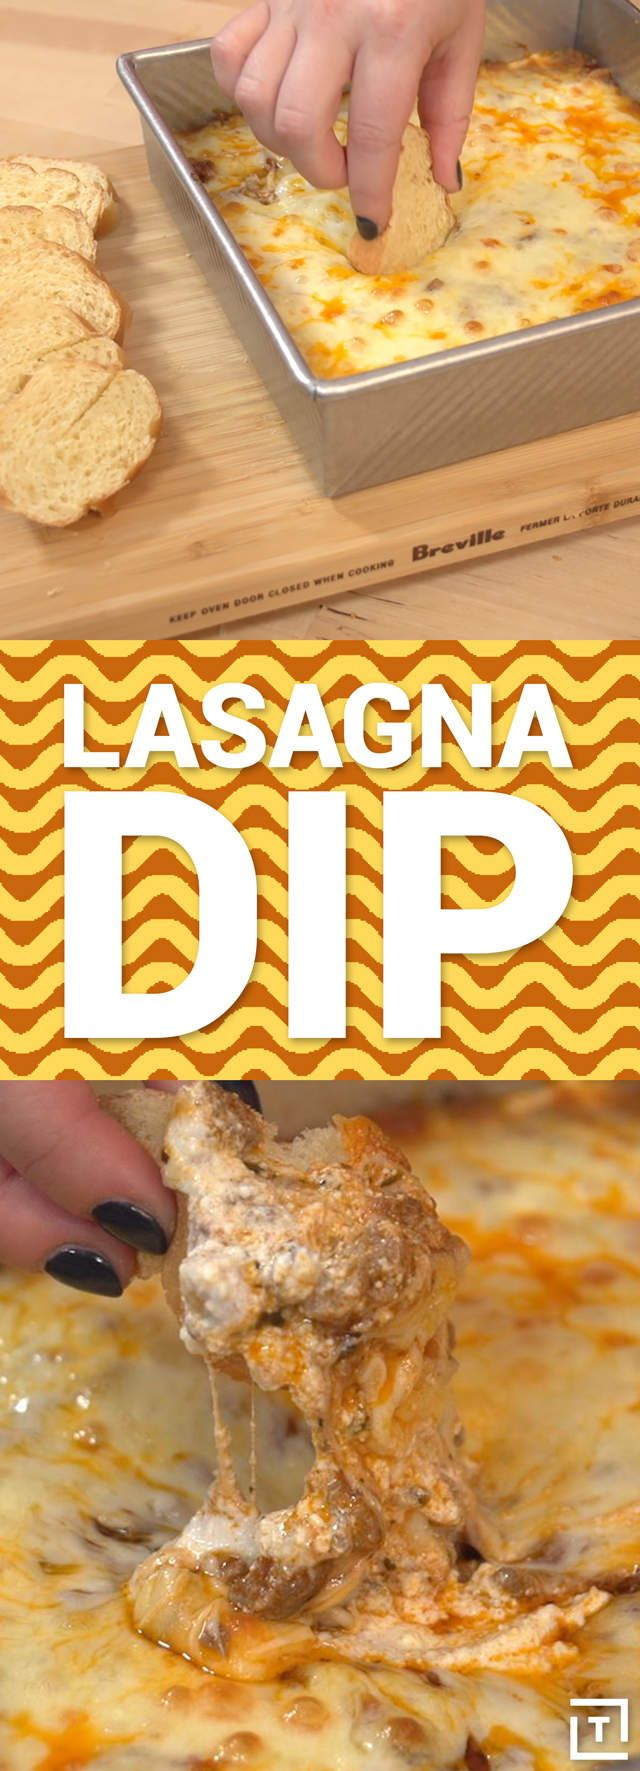 Lasagna Dip Is Made of the Two Best Things (Lasagna and Dip)